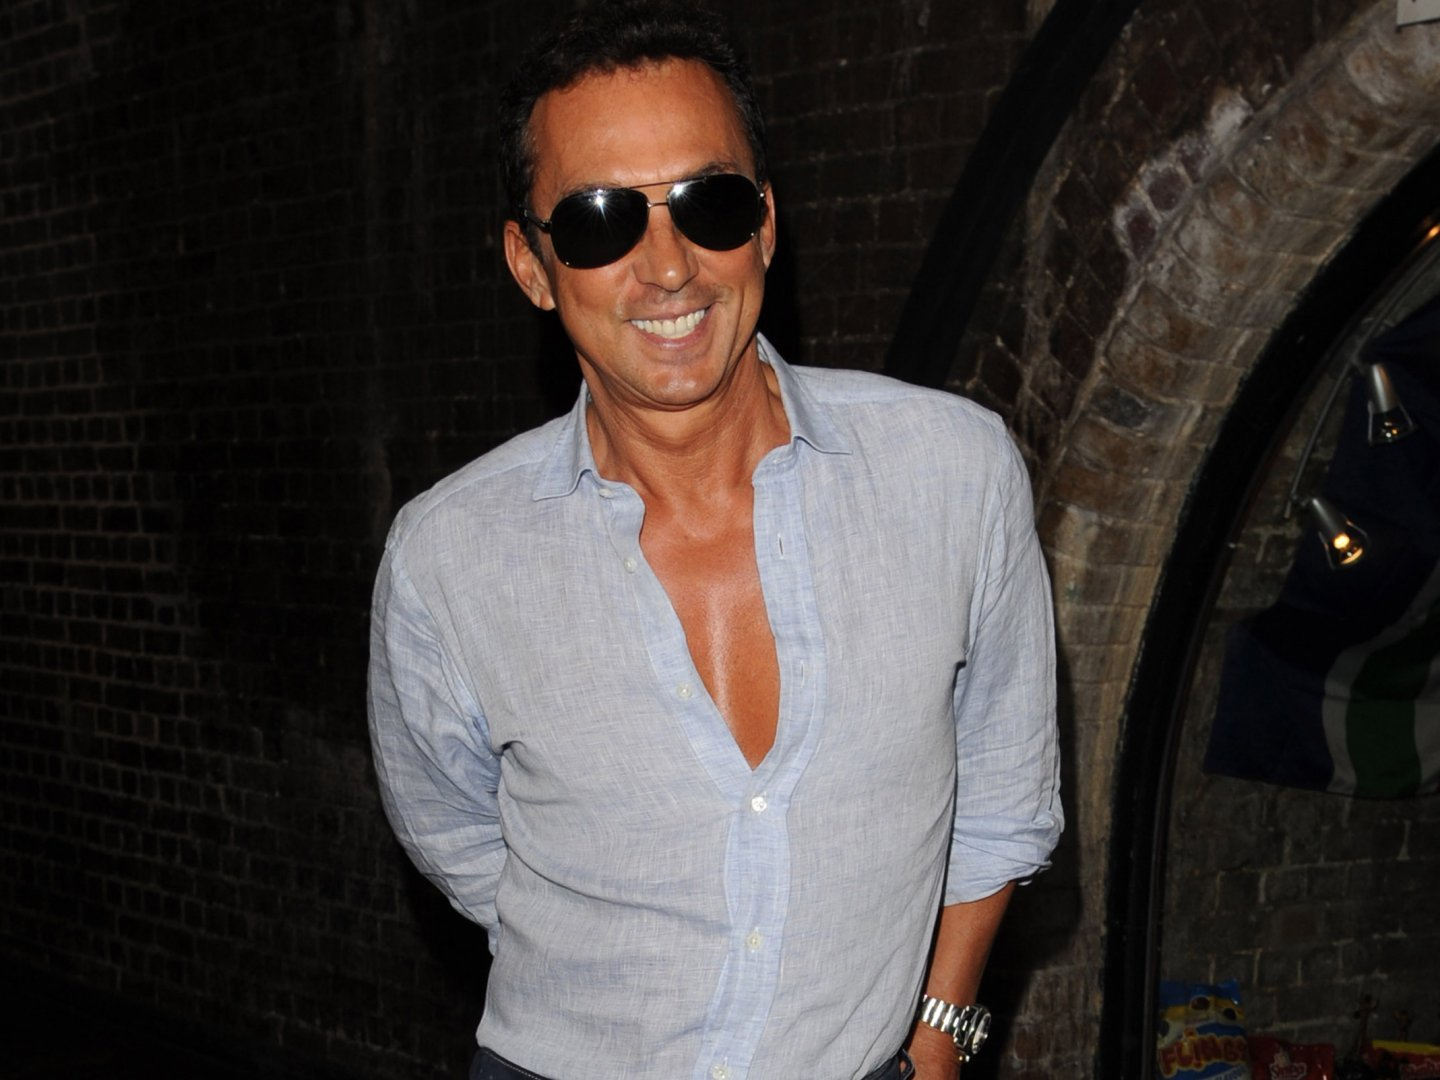 bruno-tonioli-shirt-43